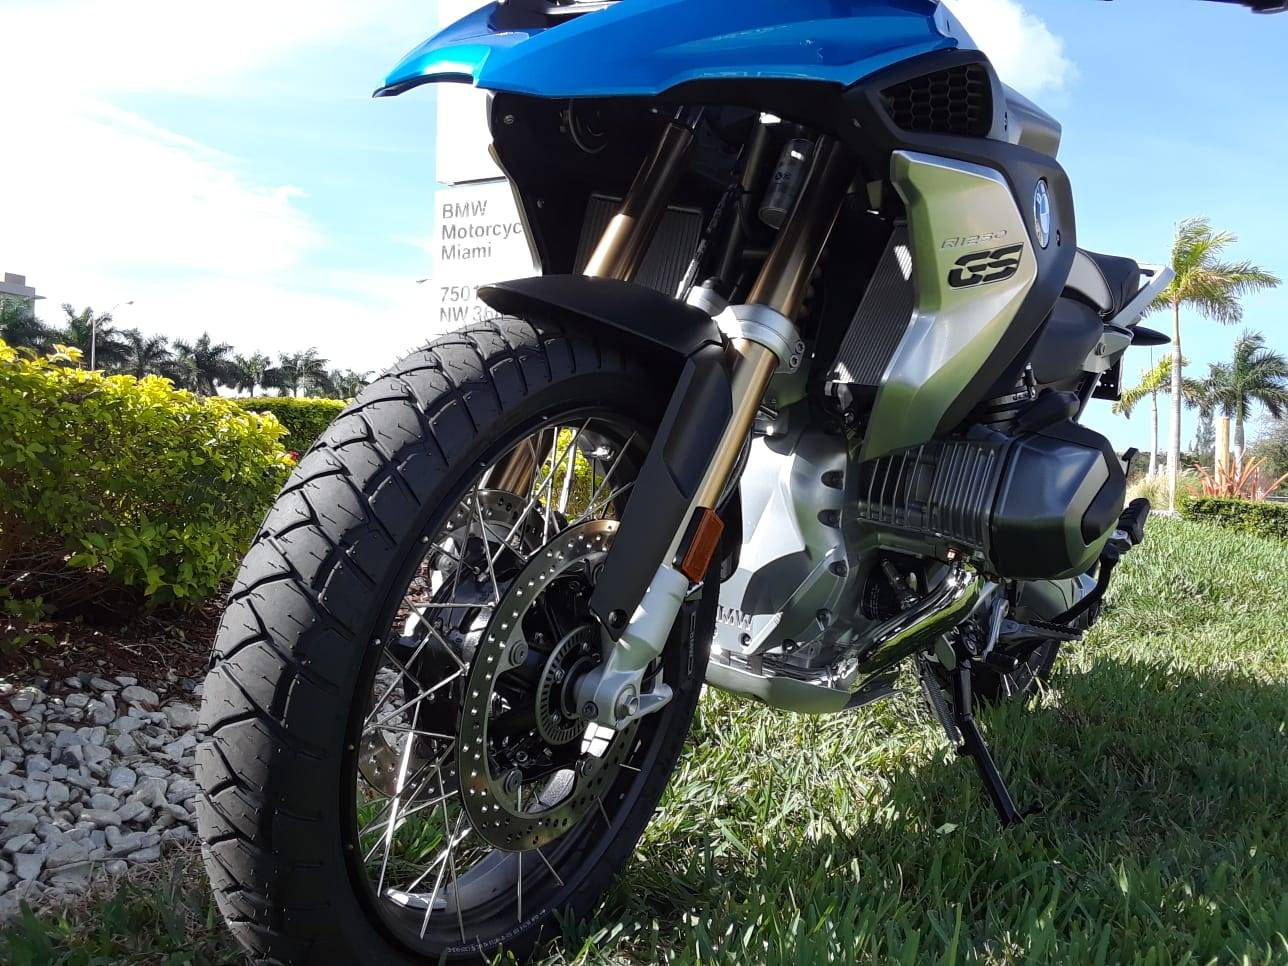 New 2019 BMW R 1250 GS for sale, New BMW R 1250GS, BMW R1250GS for sale, 1250GS, R1250GS, BMW Motorcycles of Miami, Motorcycles of Miami. Motorcycles Miami - Photo 34